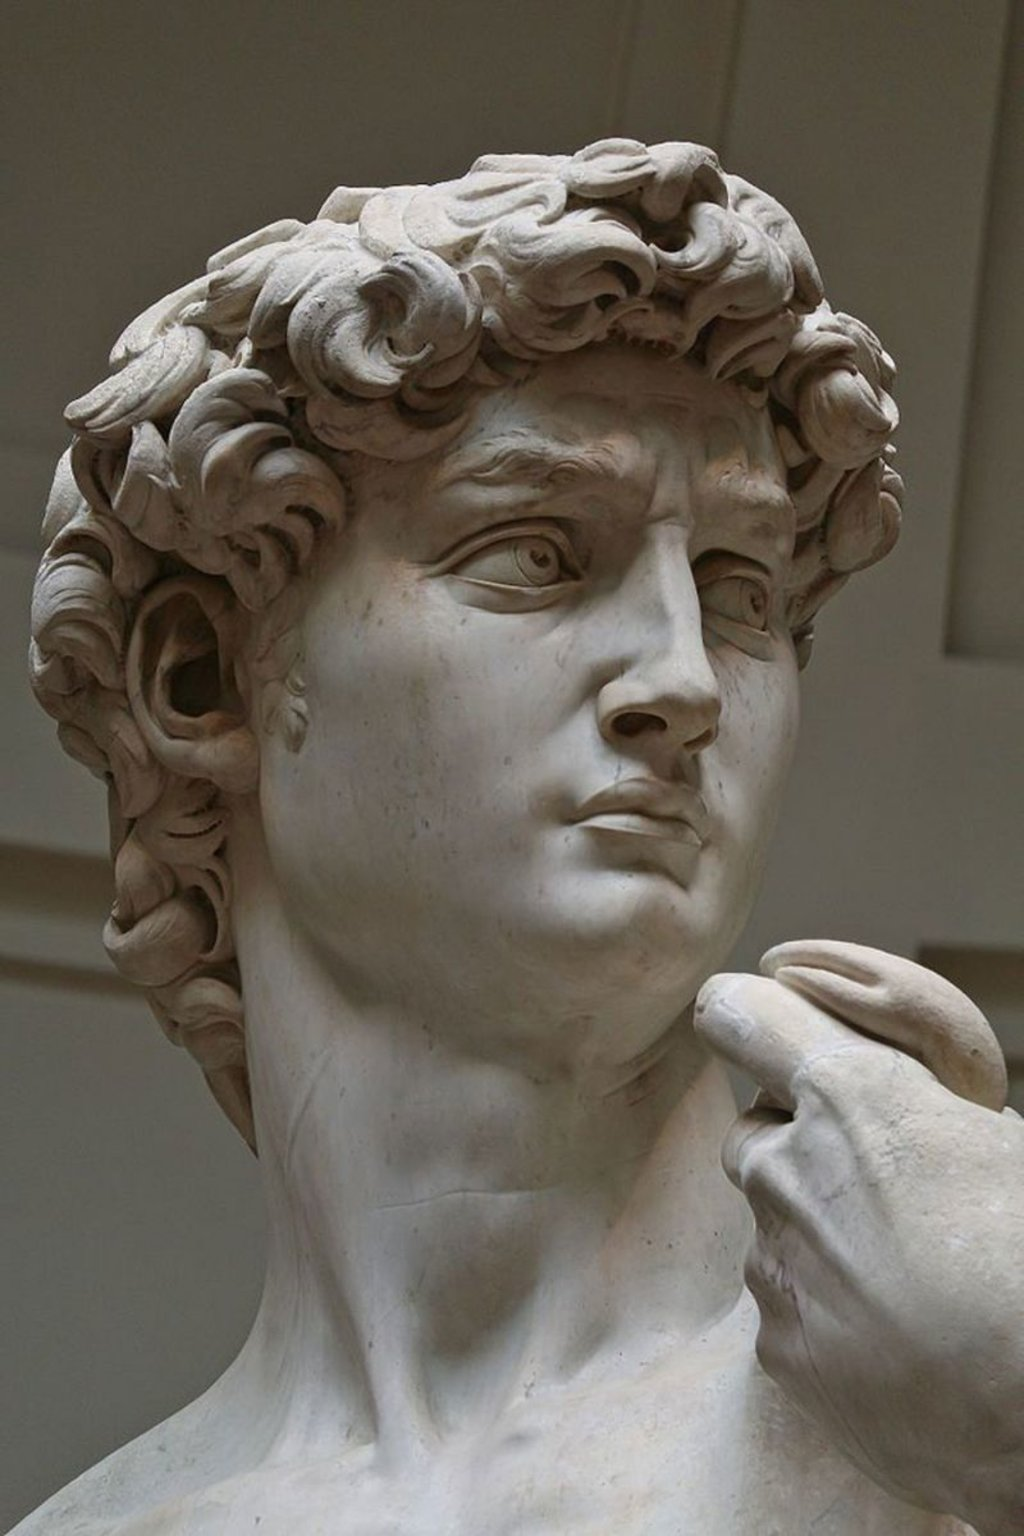 Galleria dell'Accademia, il David di Michelangelo - By Jörg Bittner Unna (Opera propria)  , via Wikimedia Commons